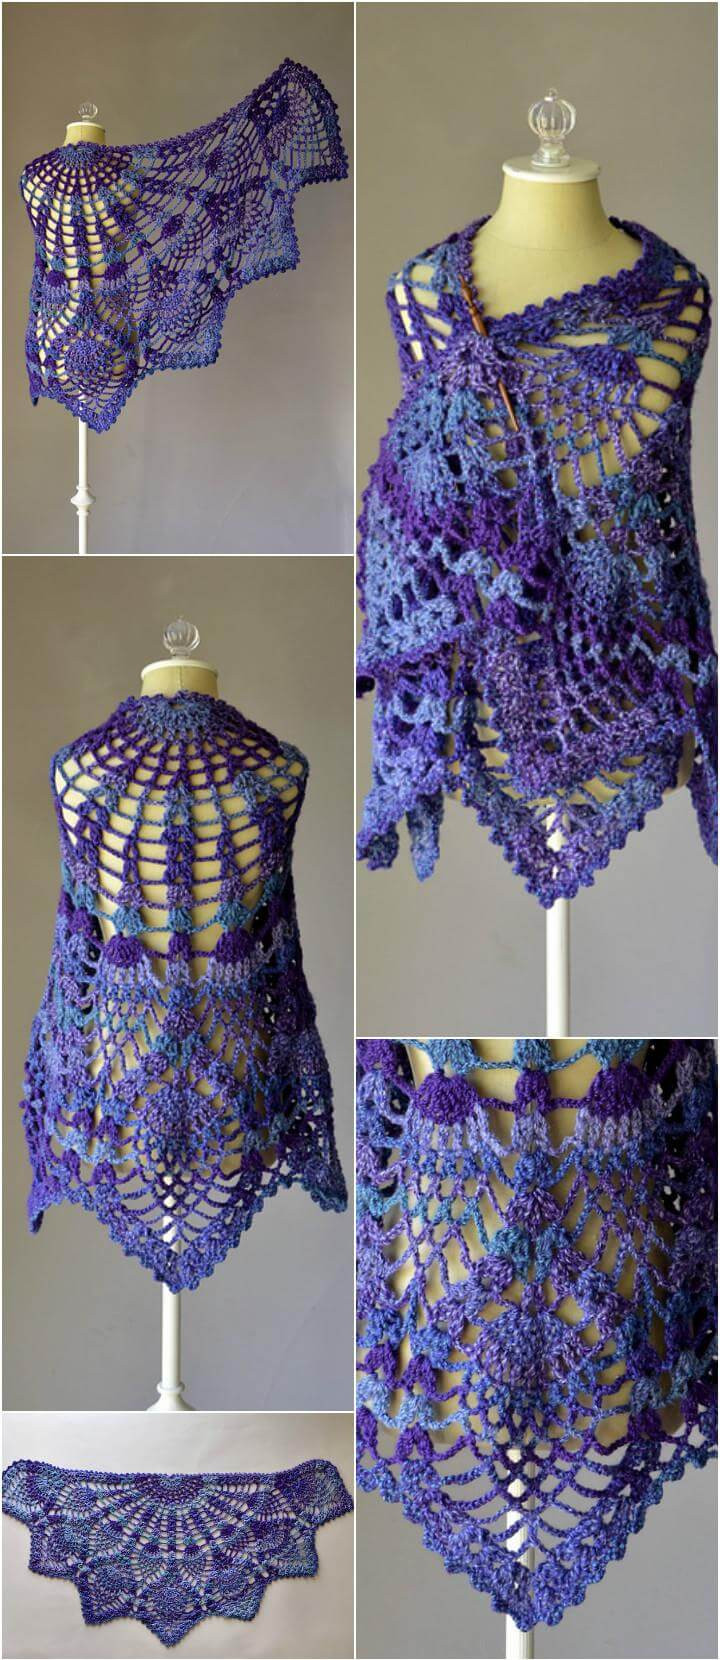 Fresh 10 Free Crochet Shawl Patterns for Women S Peacock Shawl Of Charming 44 Pictures Peacock Shawl